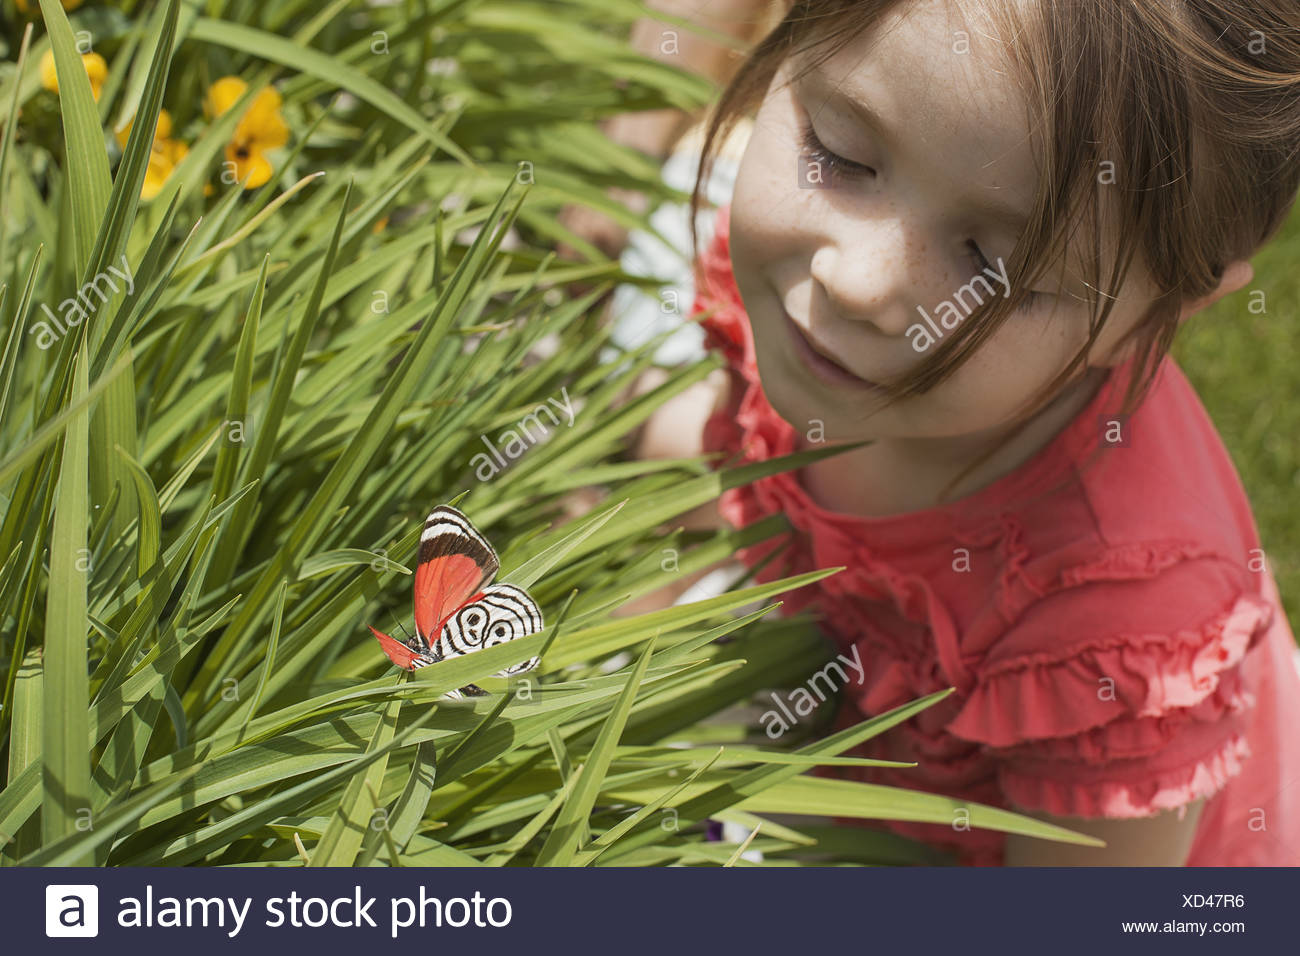 Utah USA young girl looking at colourful butterfly grass - Stock Image